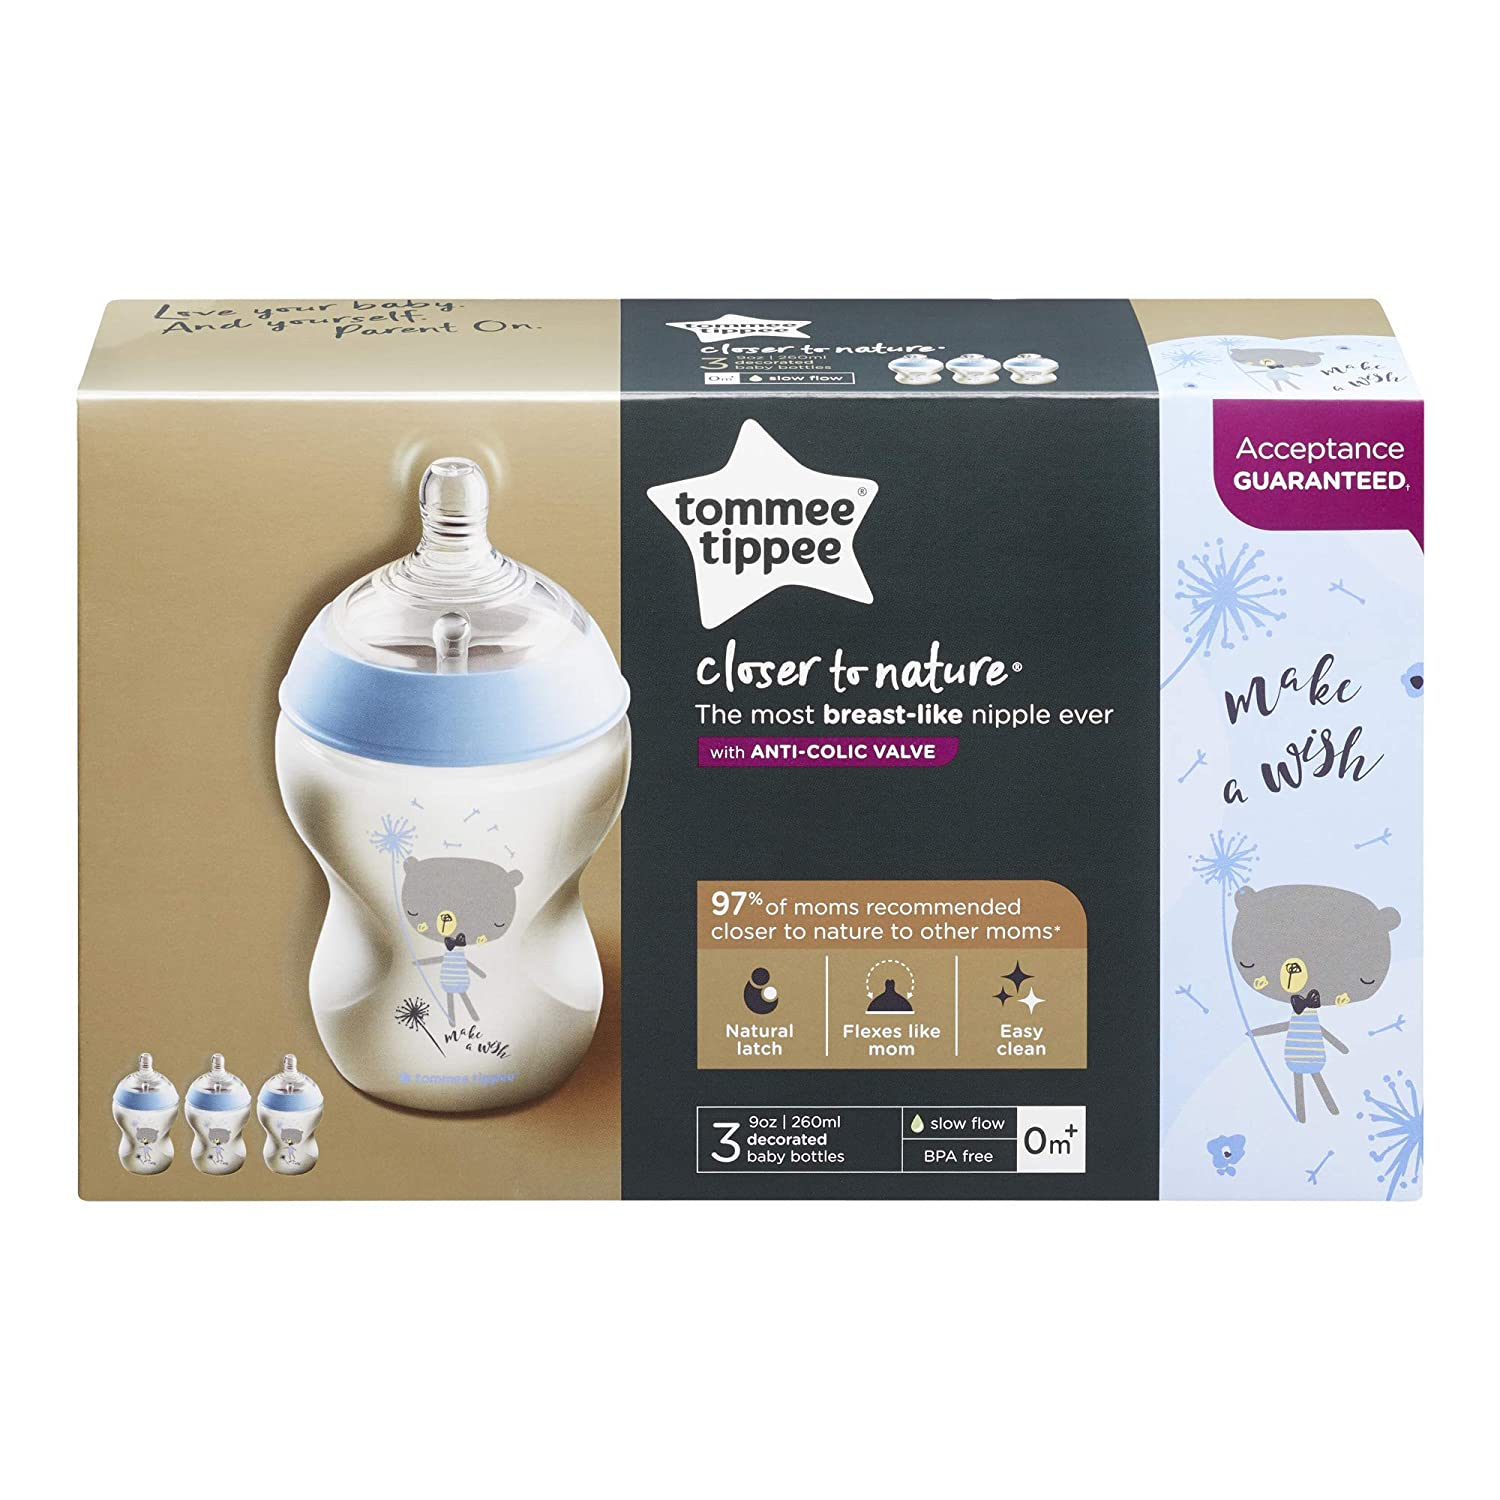 Tommee Tippee Closer to Nature Baby Bottle Decorated Blue Anti-Colic Valve Slow Flow Breast-Like Nipple for Natural Latch 2 Count Design May Vary 9 Ounce BPA-Free 0+ Months